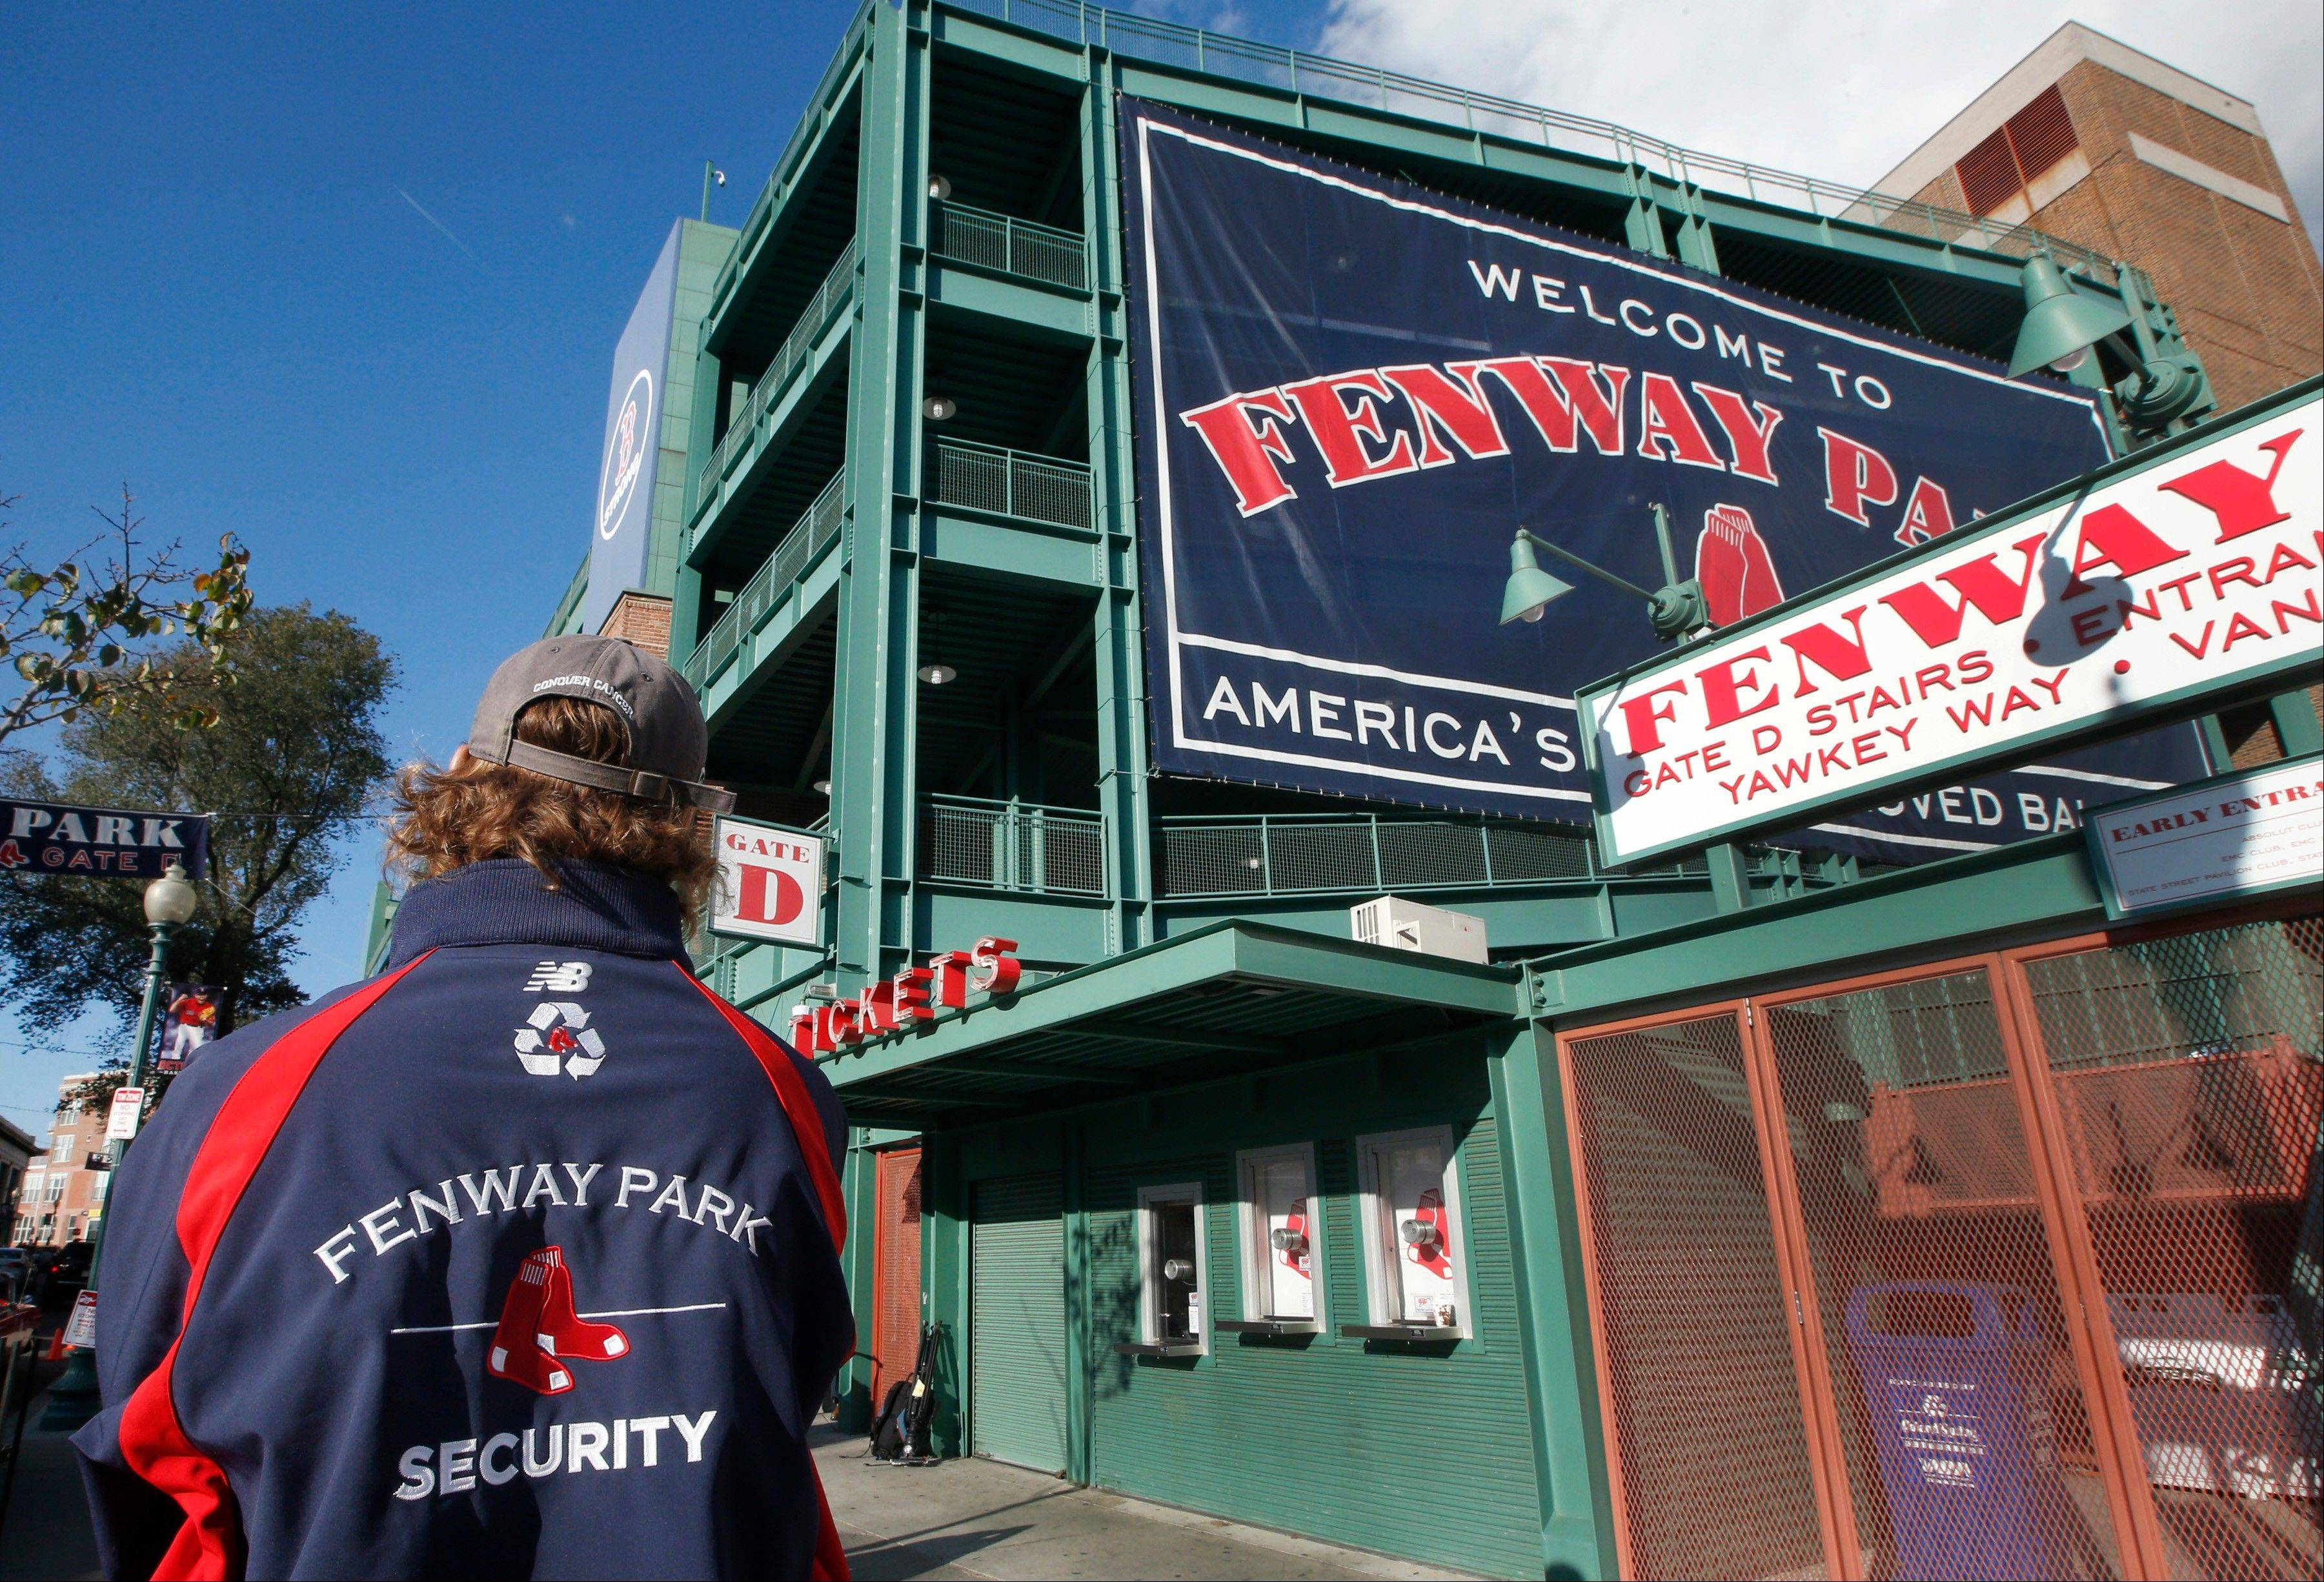 A security guard keeps an eye on things outside Gate D at Fenway Park in Boston on Tuesday. If the Boston Red Sox are able to win the baseball World Series at the stadium, police and city officials want to make sure fans celebrate responsibly.